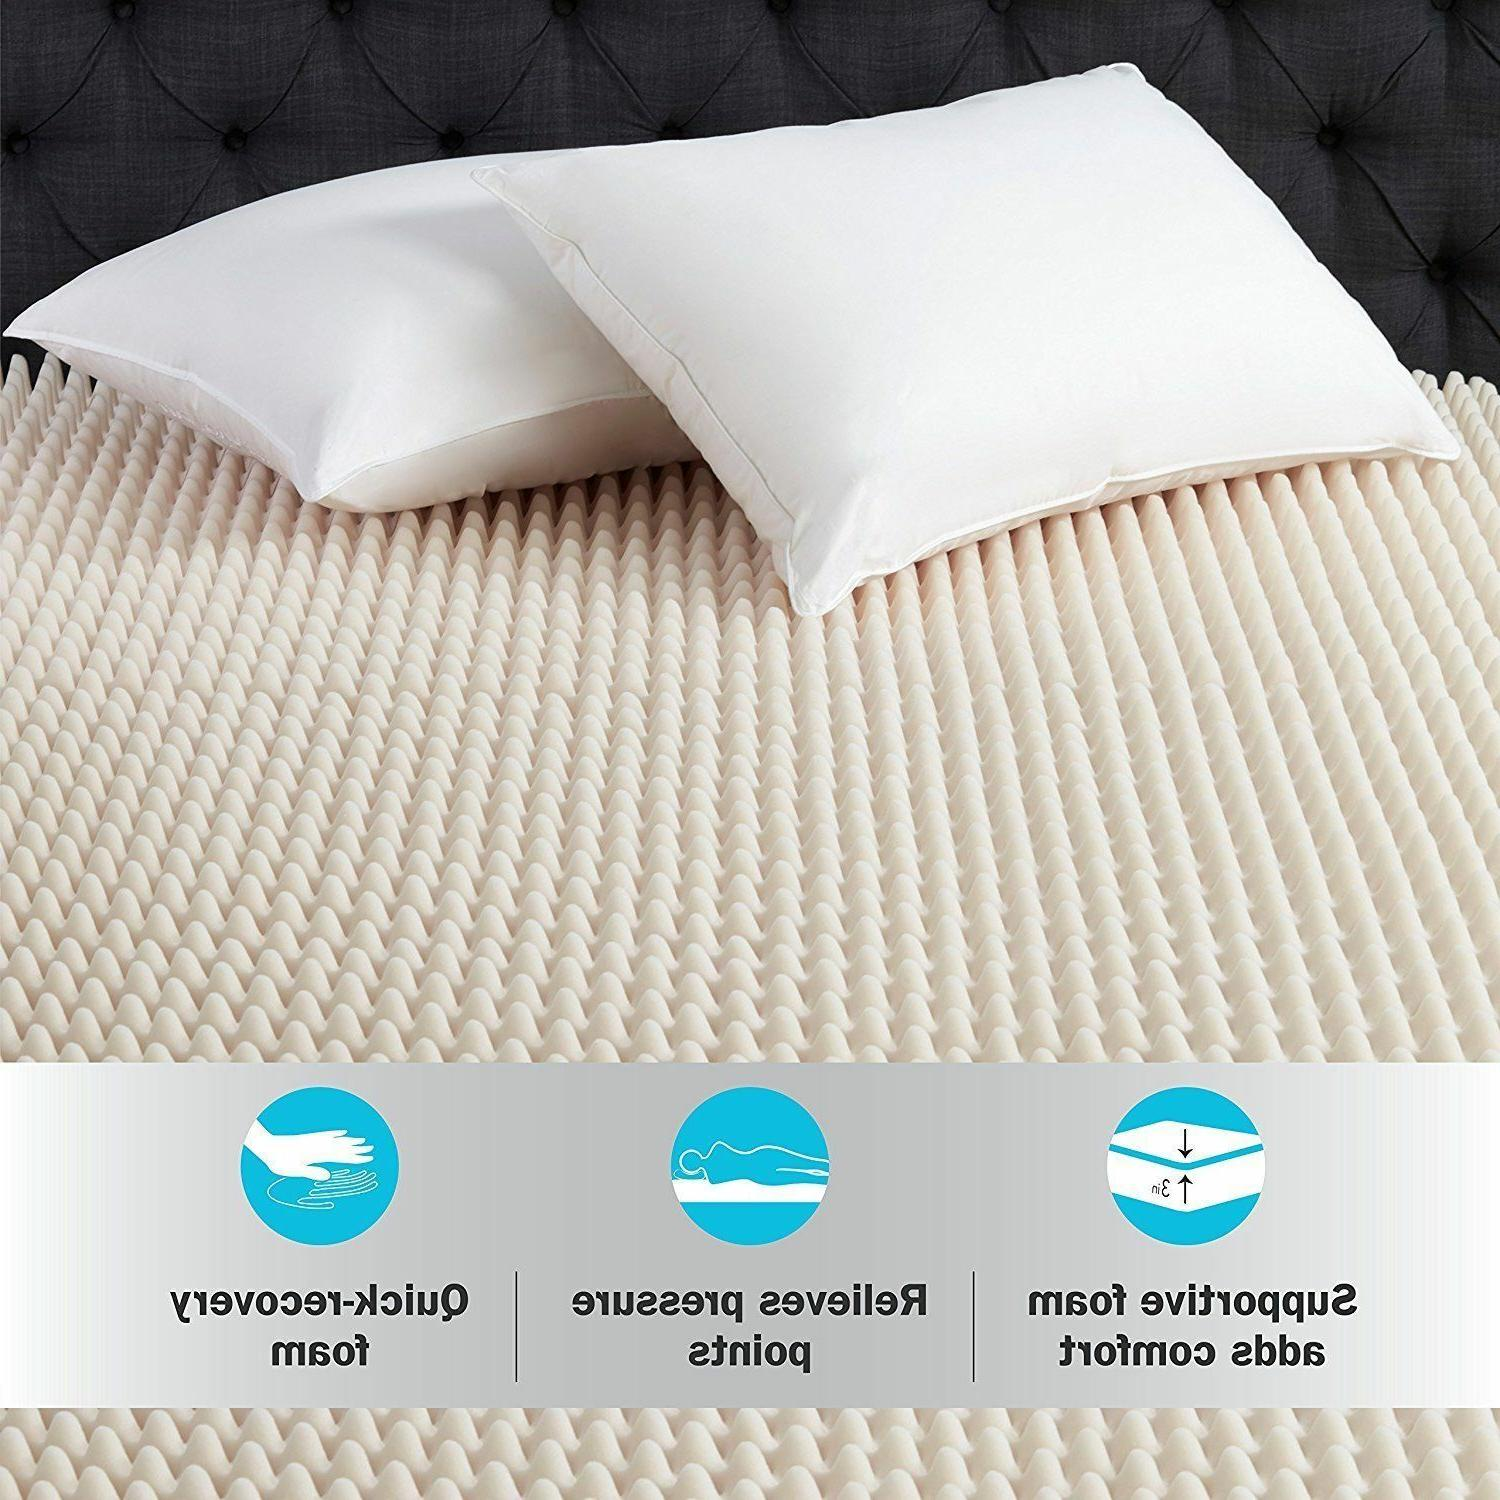 3 Mattress Topper Convoluted Bed Room